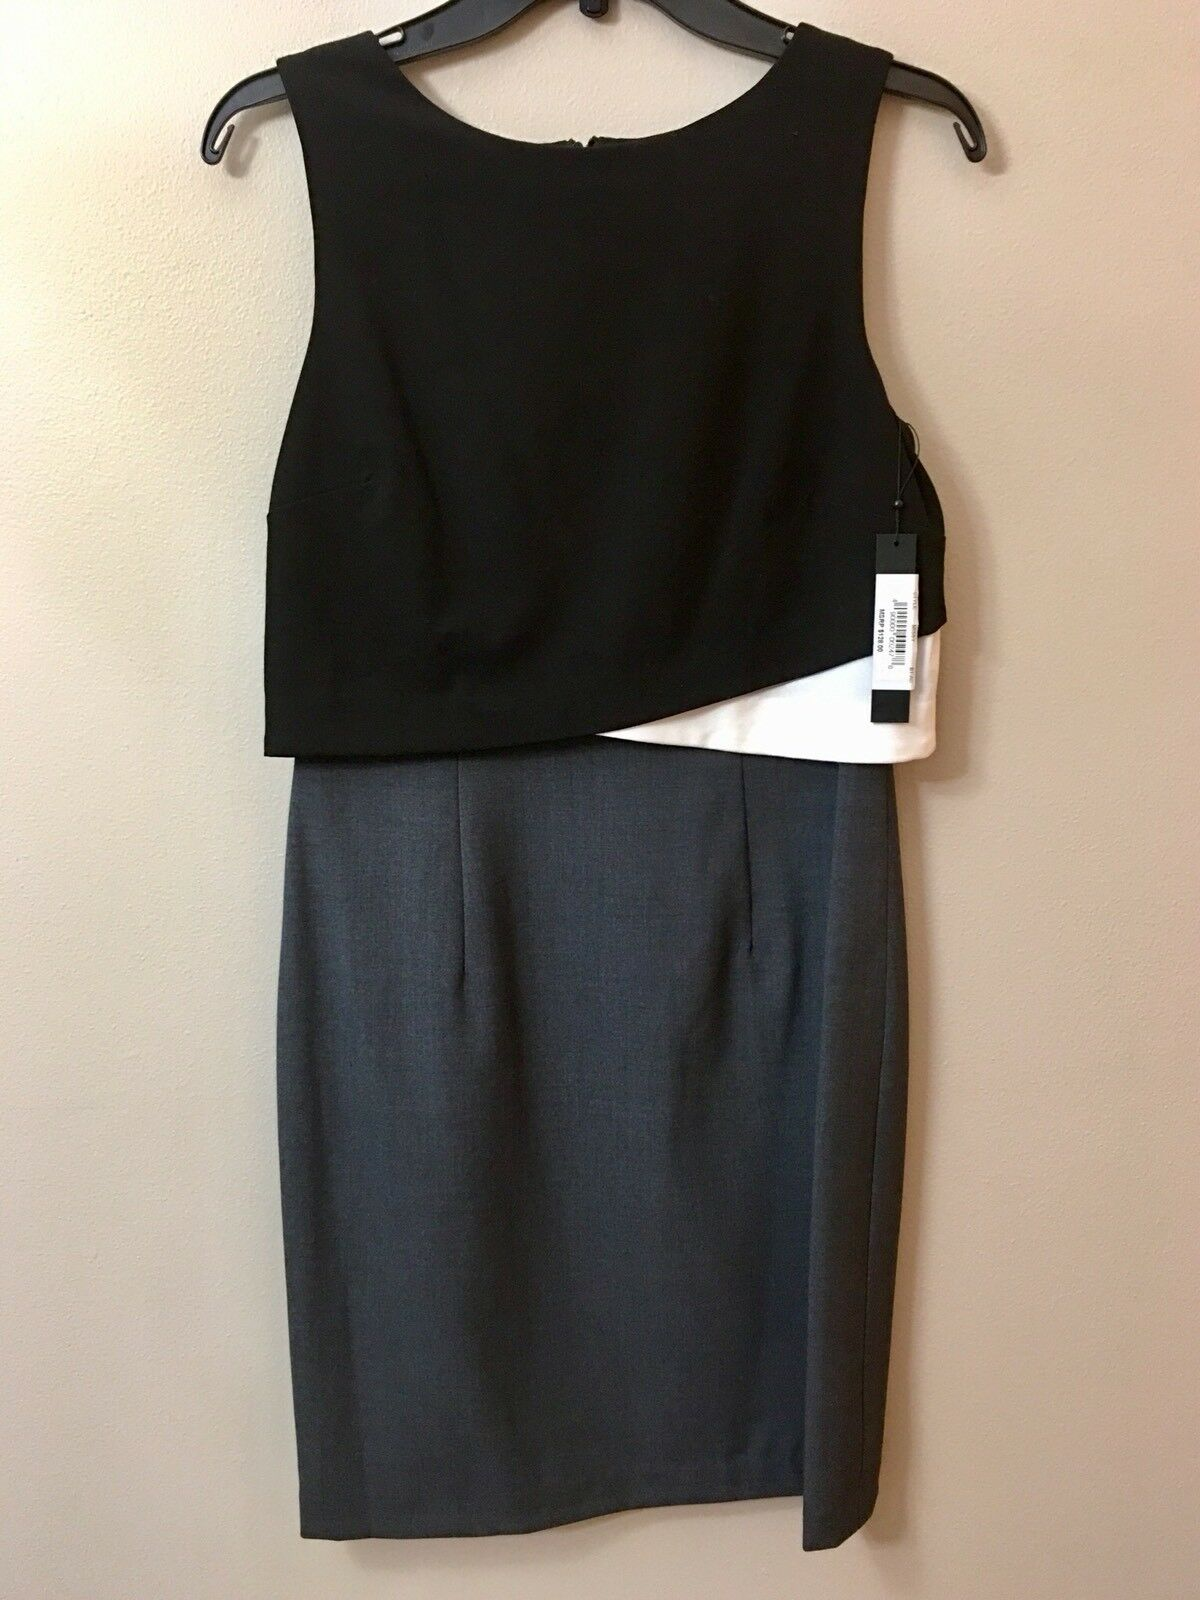 NWT Ivanka Trump Missy damen schwarz Casual Career Dress Größe 4 RRP